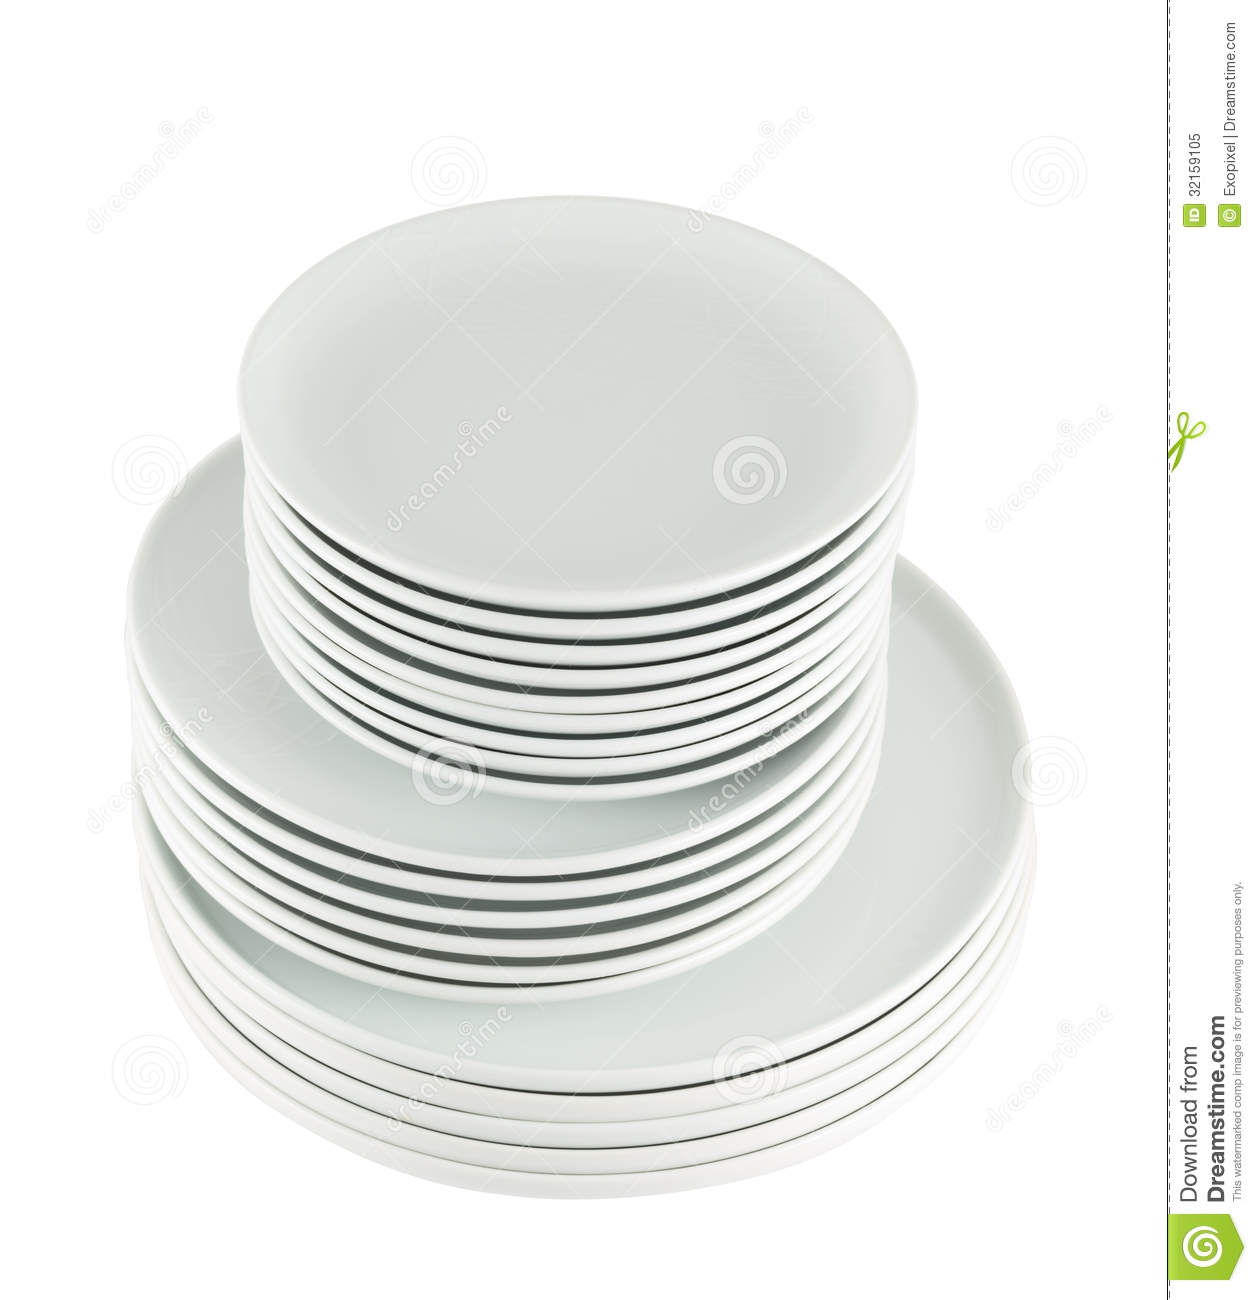 Plates Clipart  Plate Clipart  Stack Of Dirty Plates Clipart